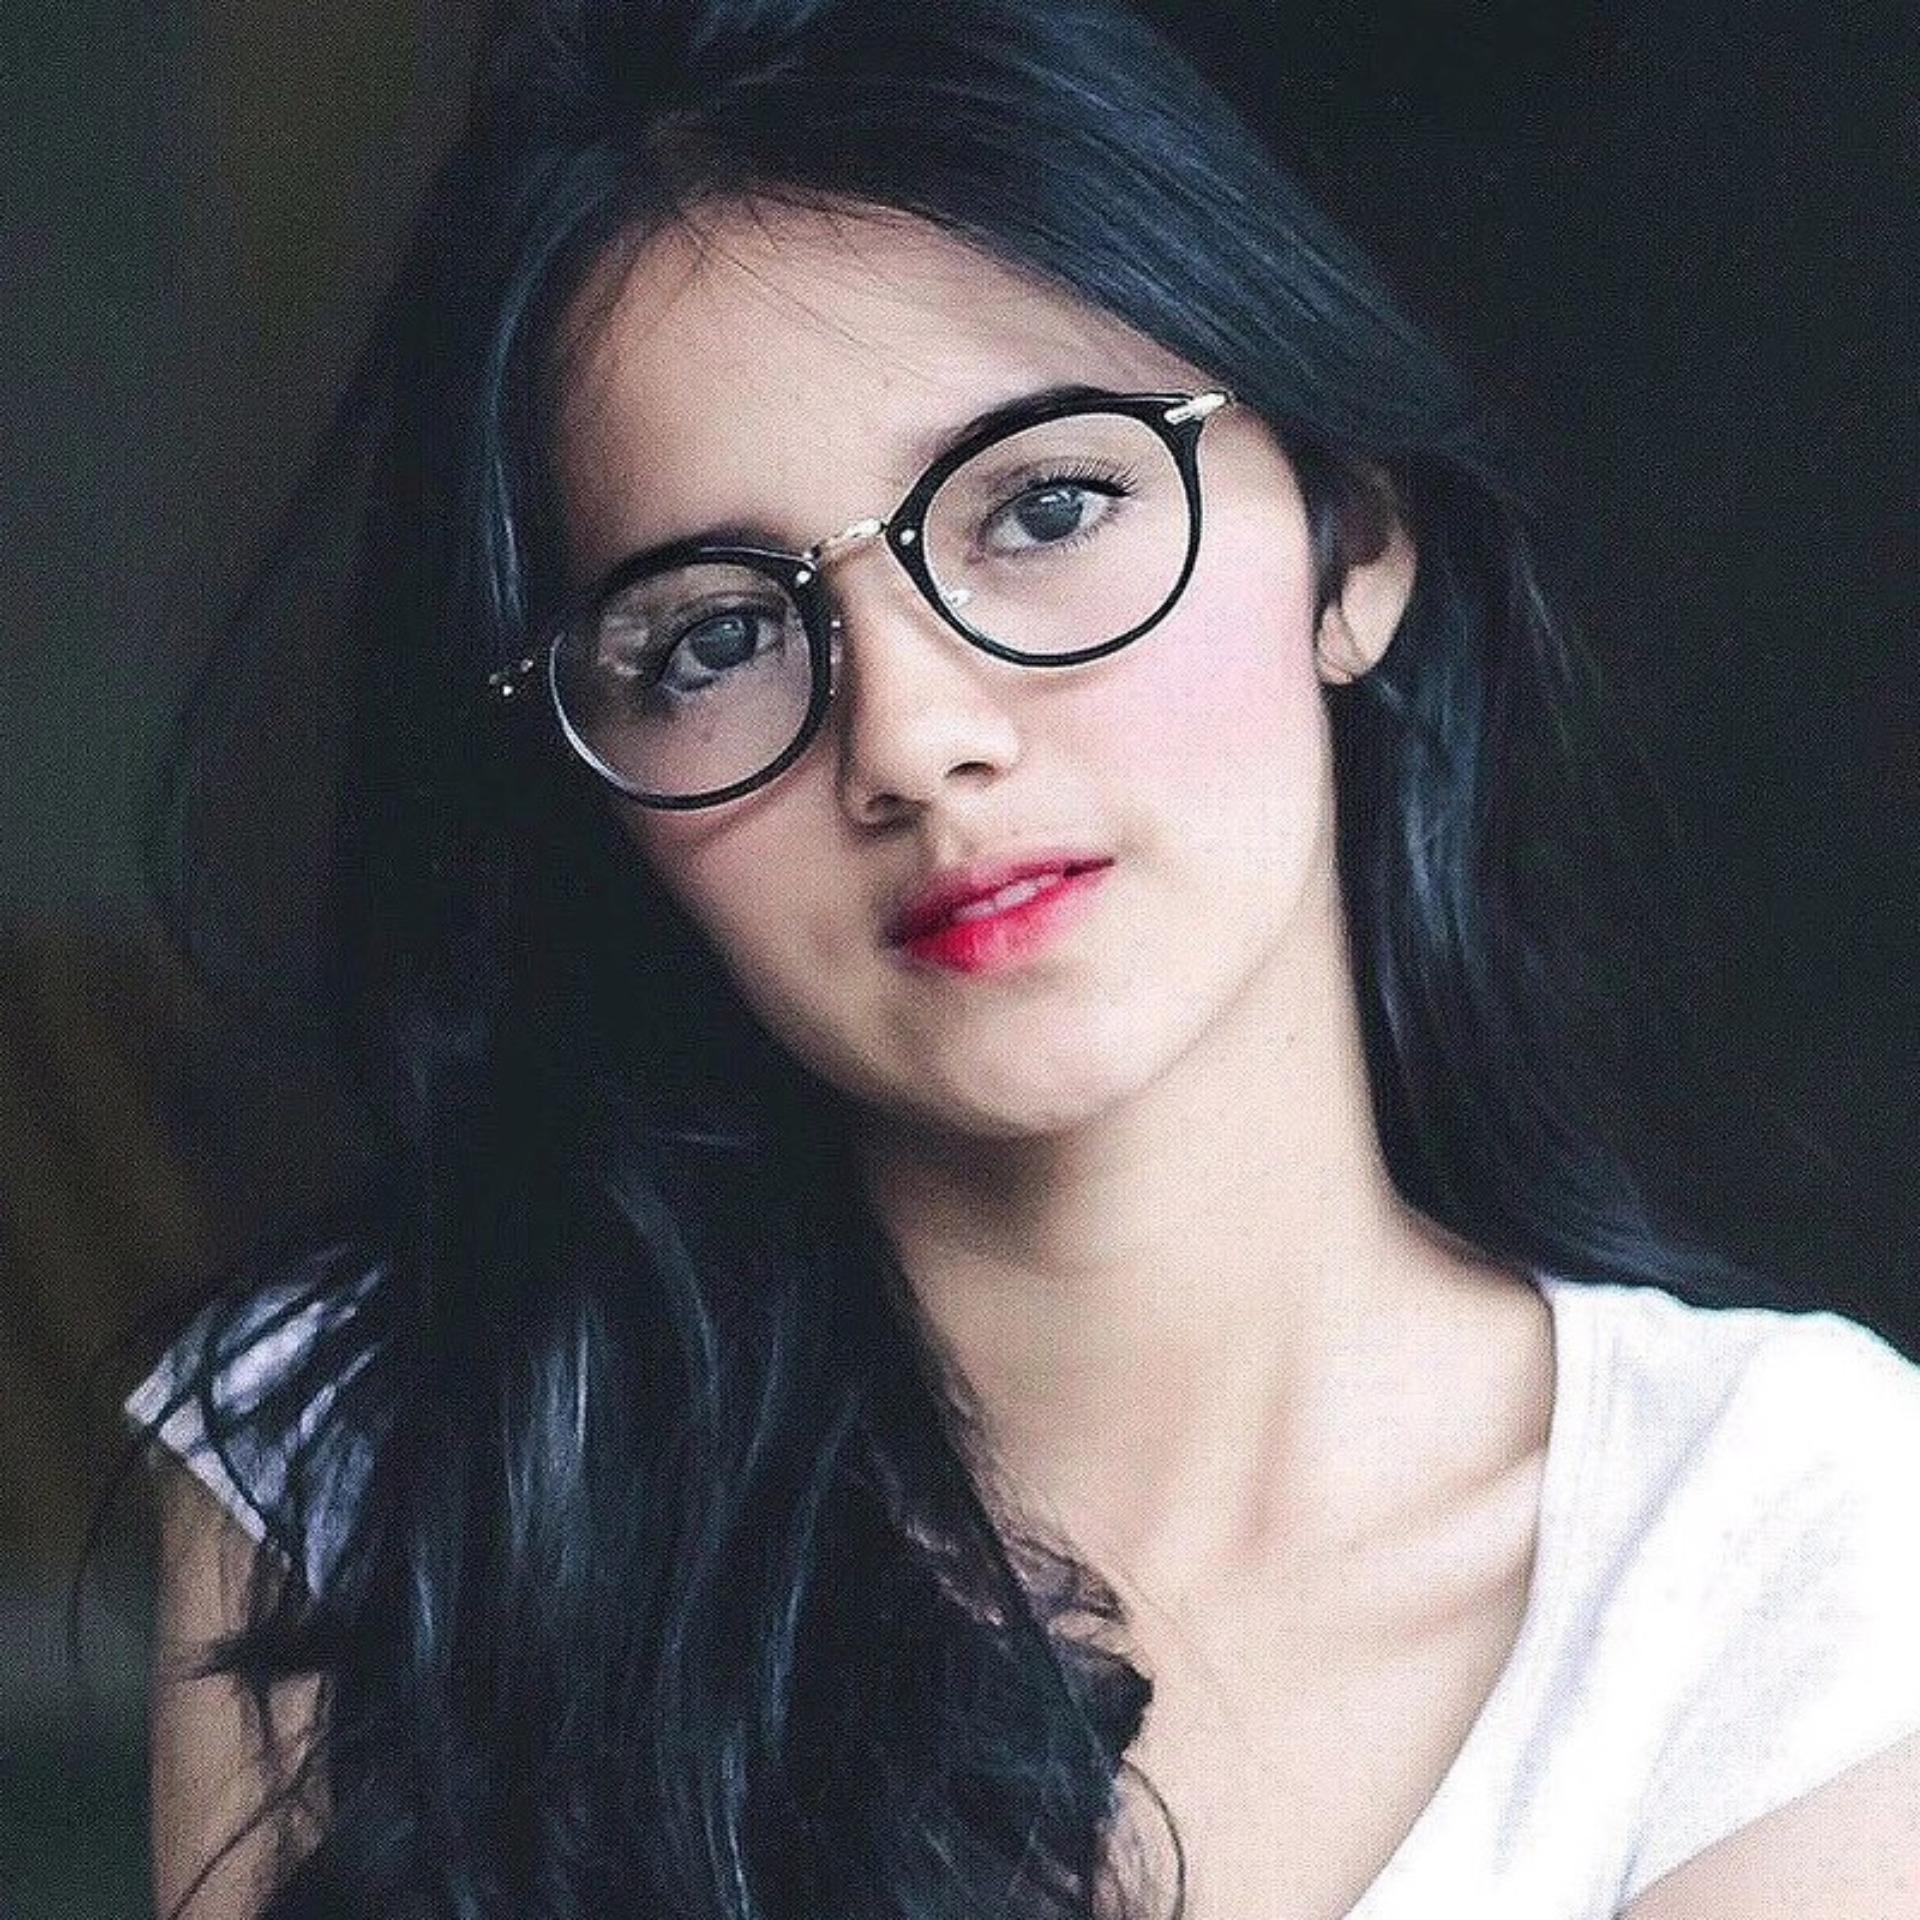 Timely - High Quality Charming Womens Round Clear Lens Glasses Sun 4480 - Kacamata Wanita - Kacamata Fashion By Timely Indonesia.